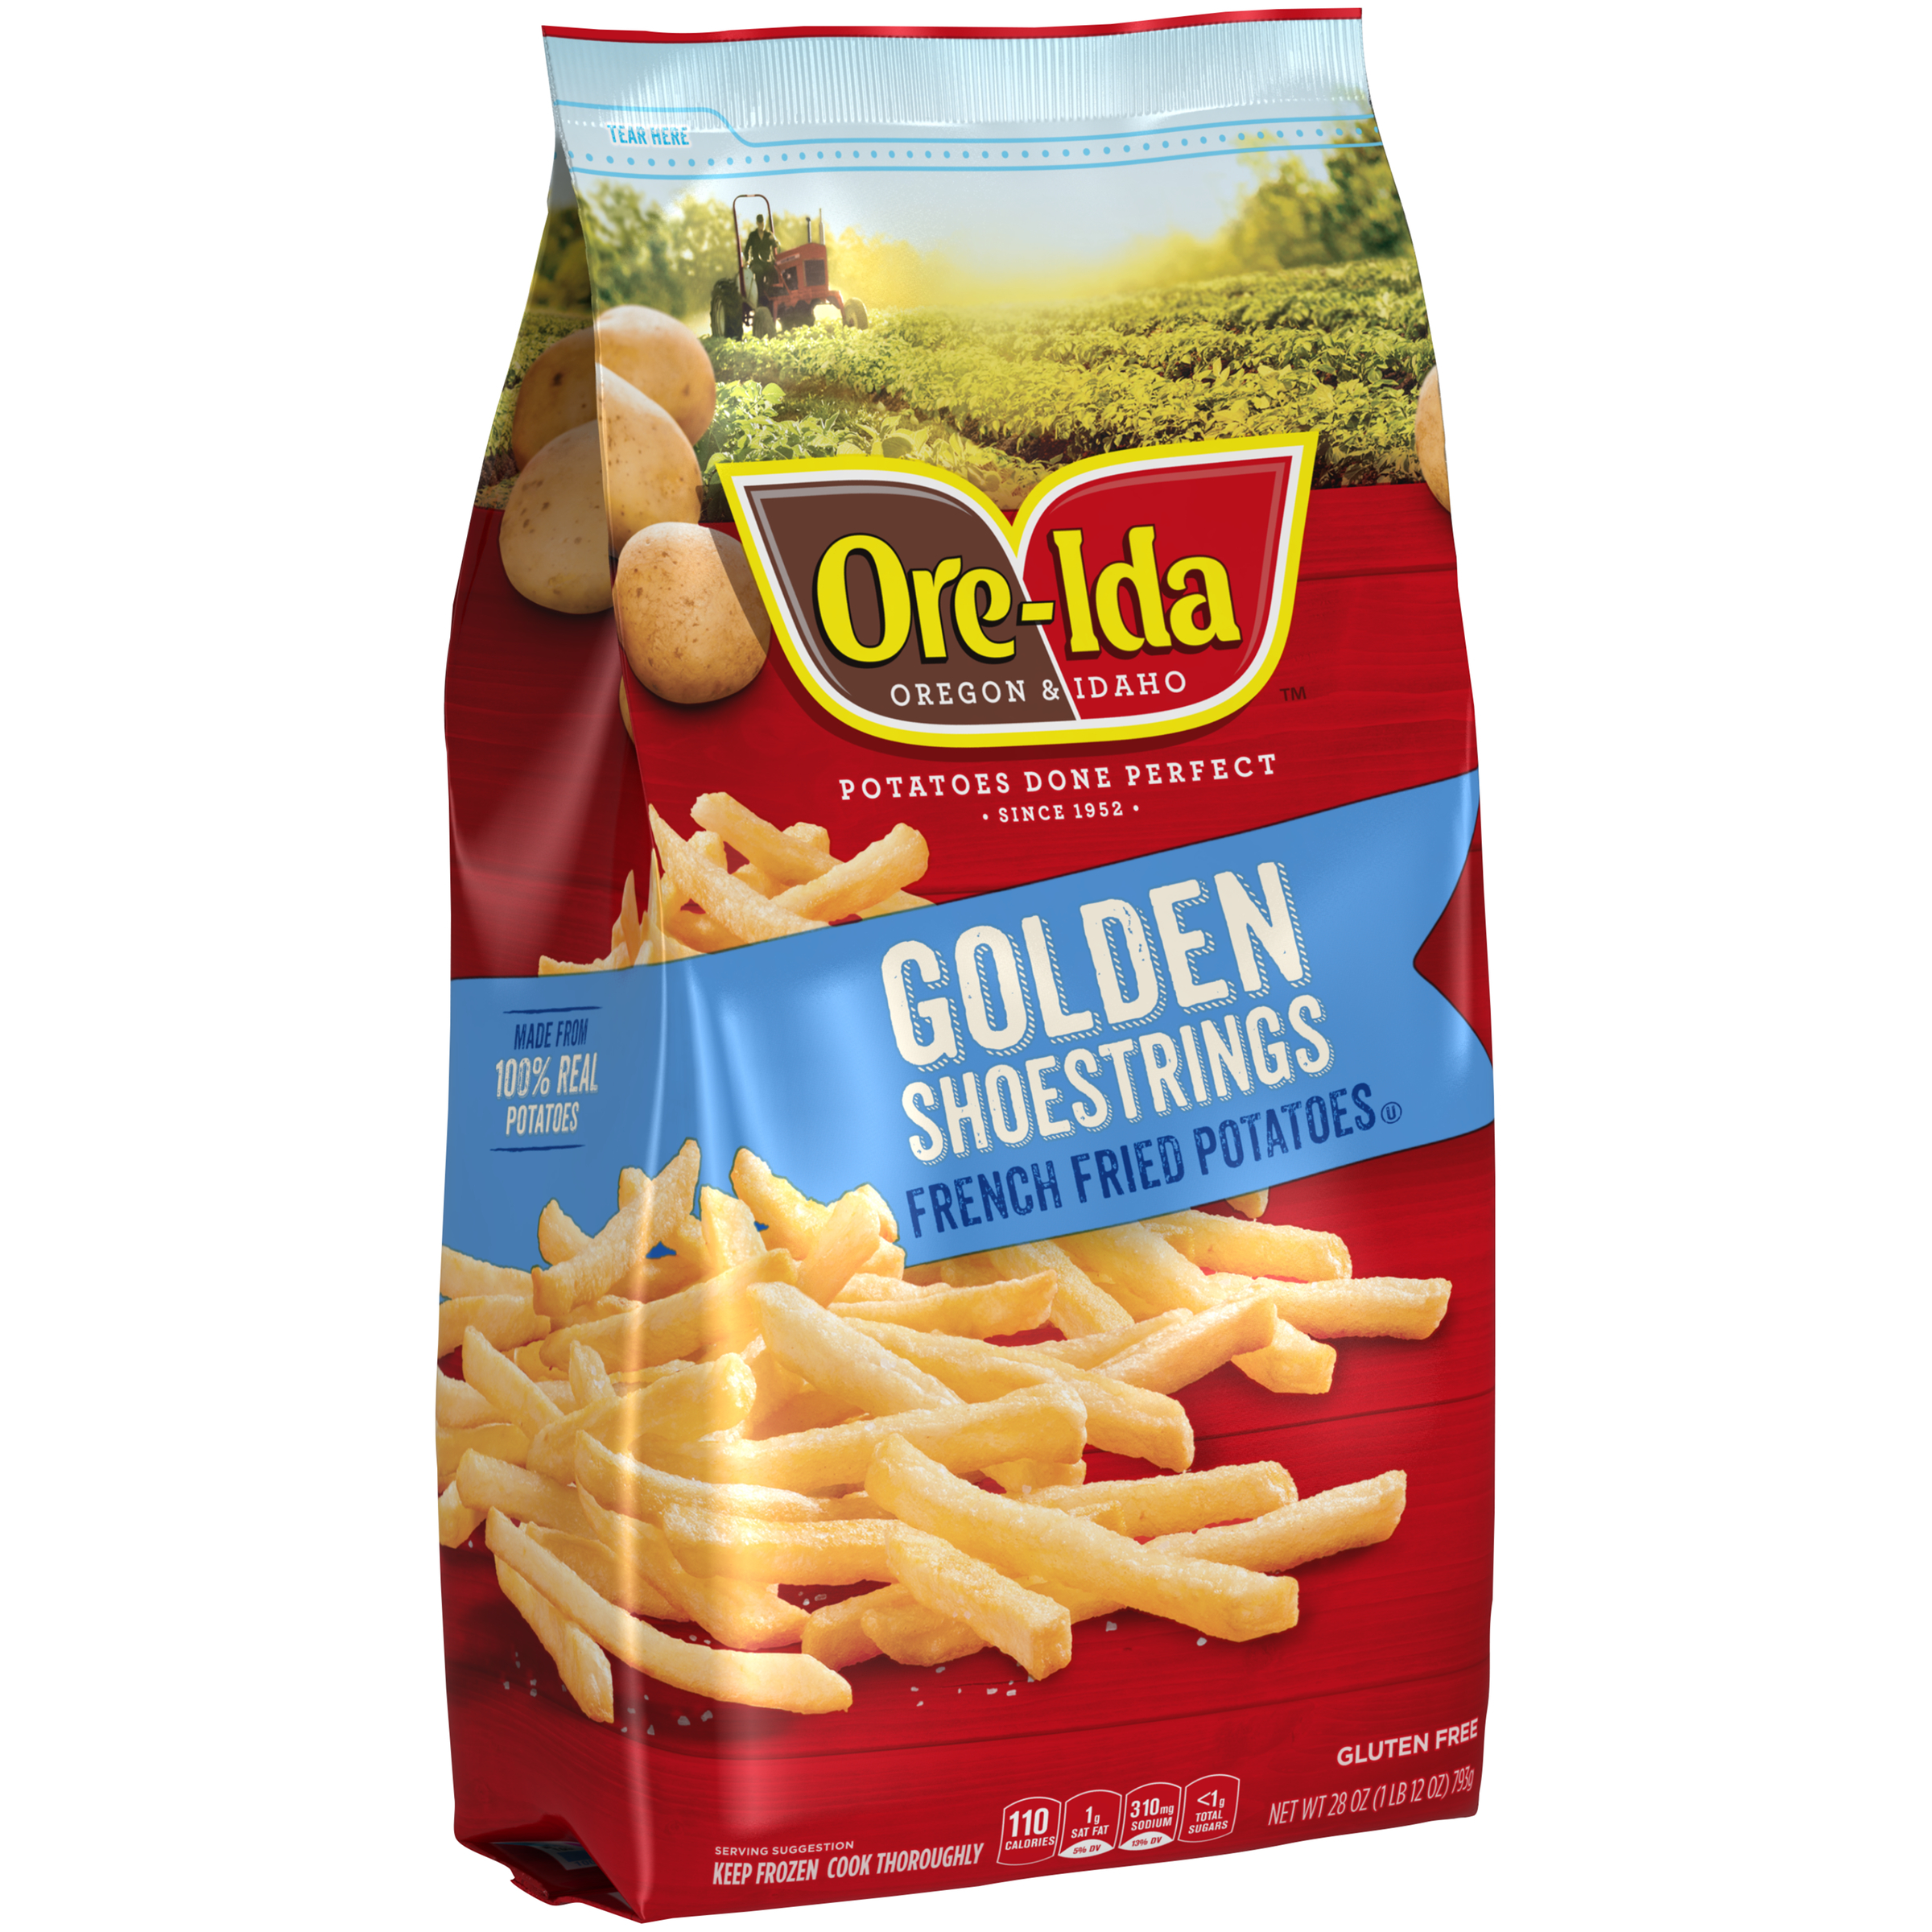 Golden Shoestring French Fries   ORE-IDA